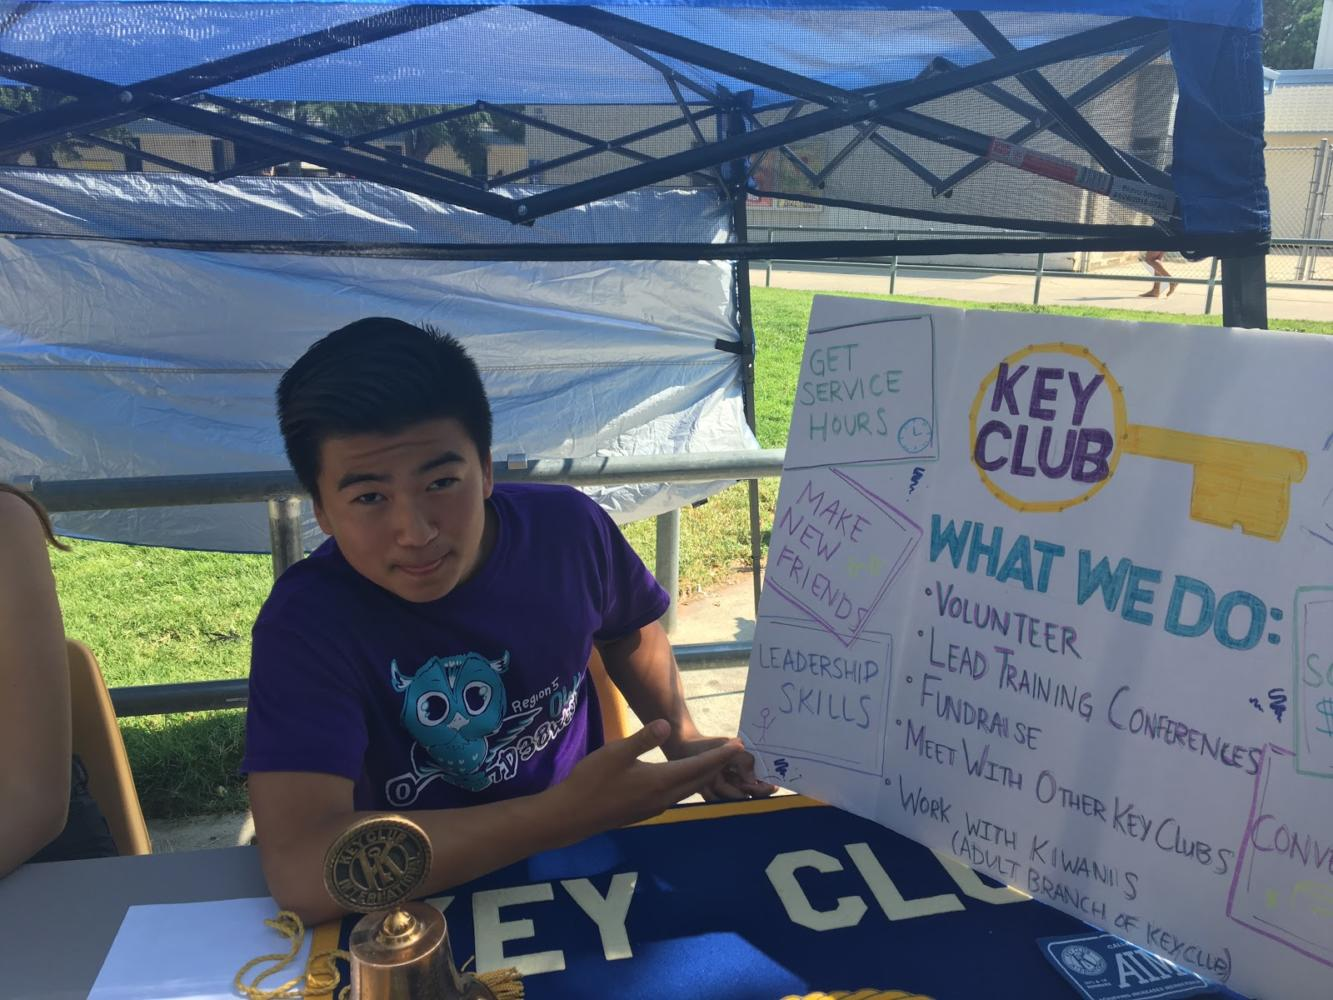 Key Club representative Daniel Cho participated in Club Rush